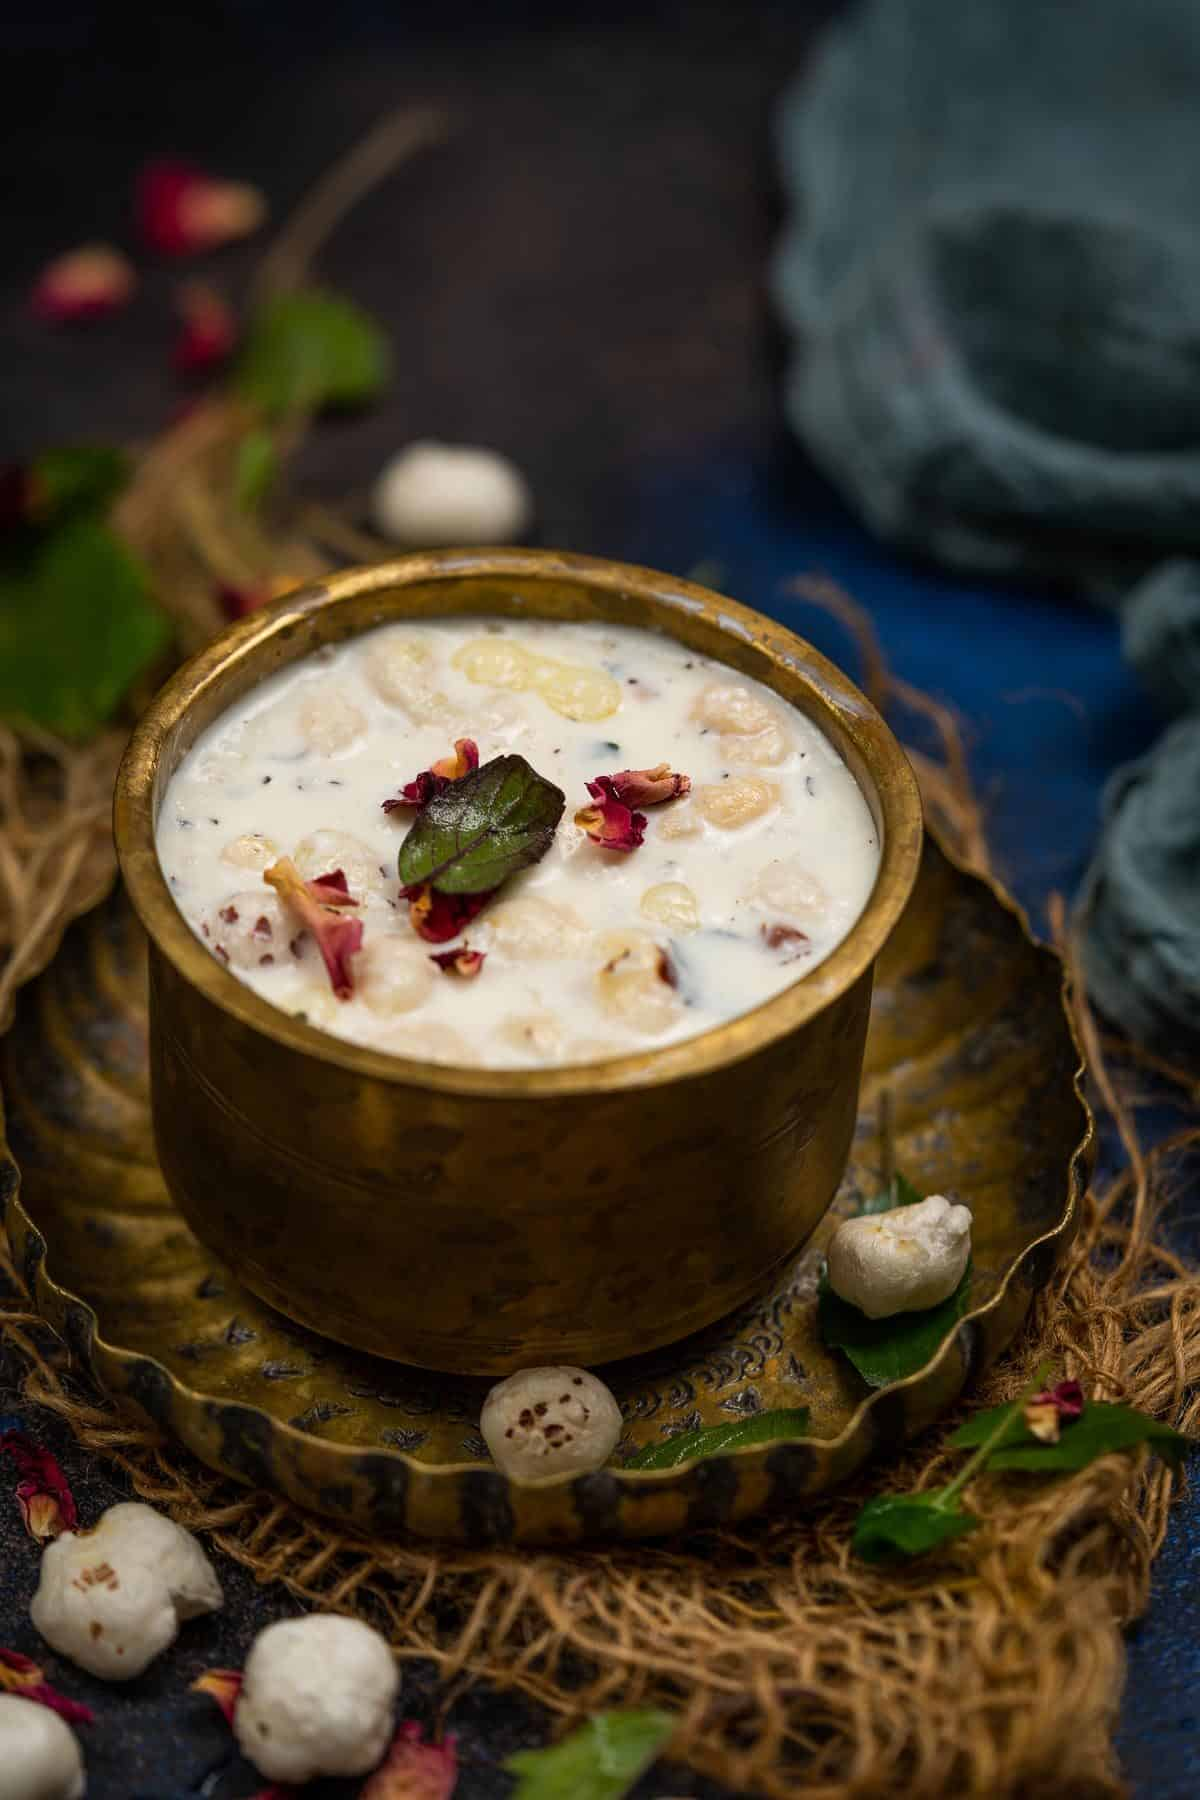 Panchamrut served in a bowl.